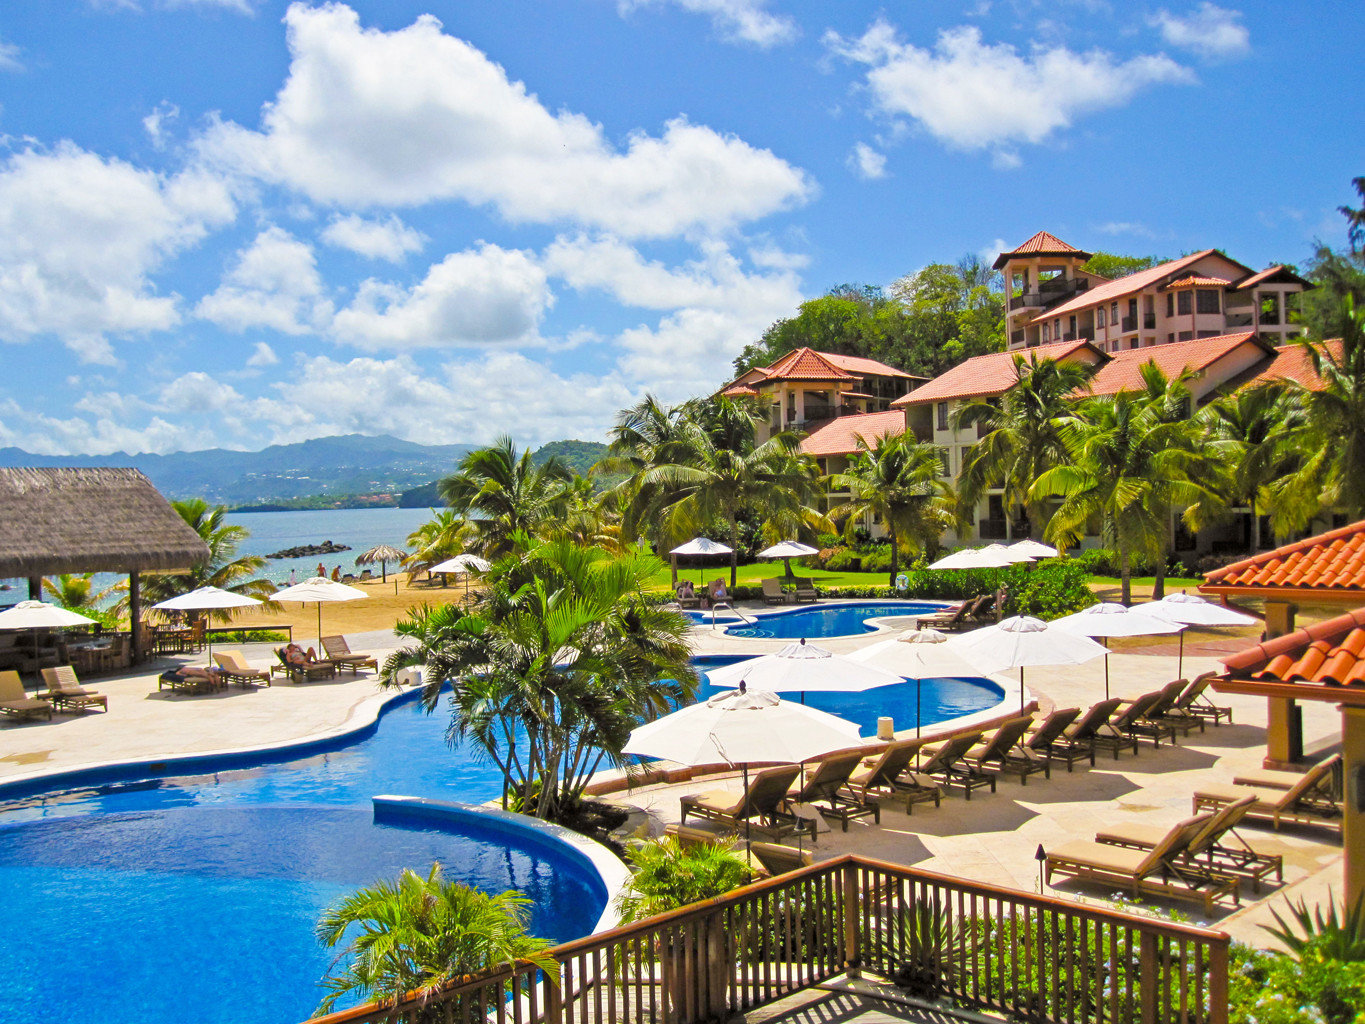 Adult-only Beach Eco Grounds Island Pool Scenic views Villa Waterfront sky umbrella Resort swimming pool leisure property caribbean blue resort town Water park Village Lagoon swimming lined day